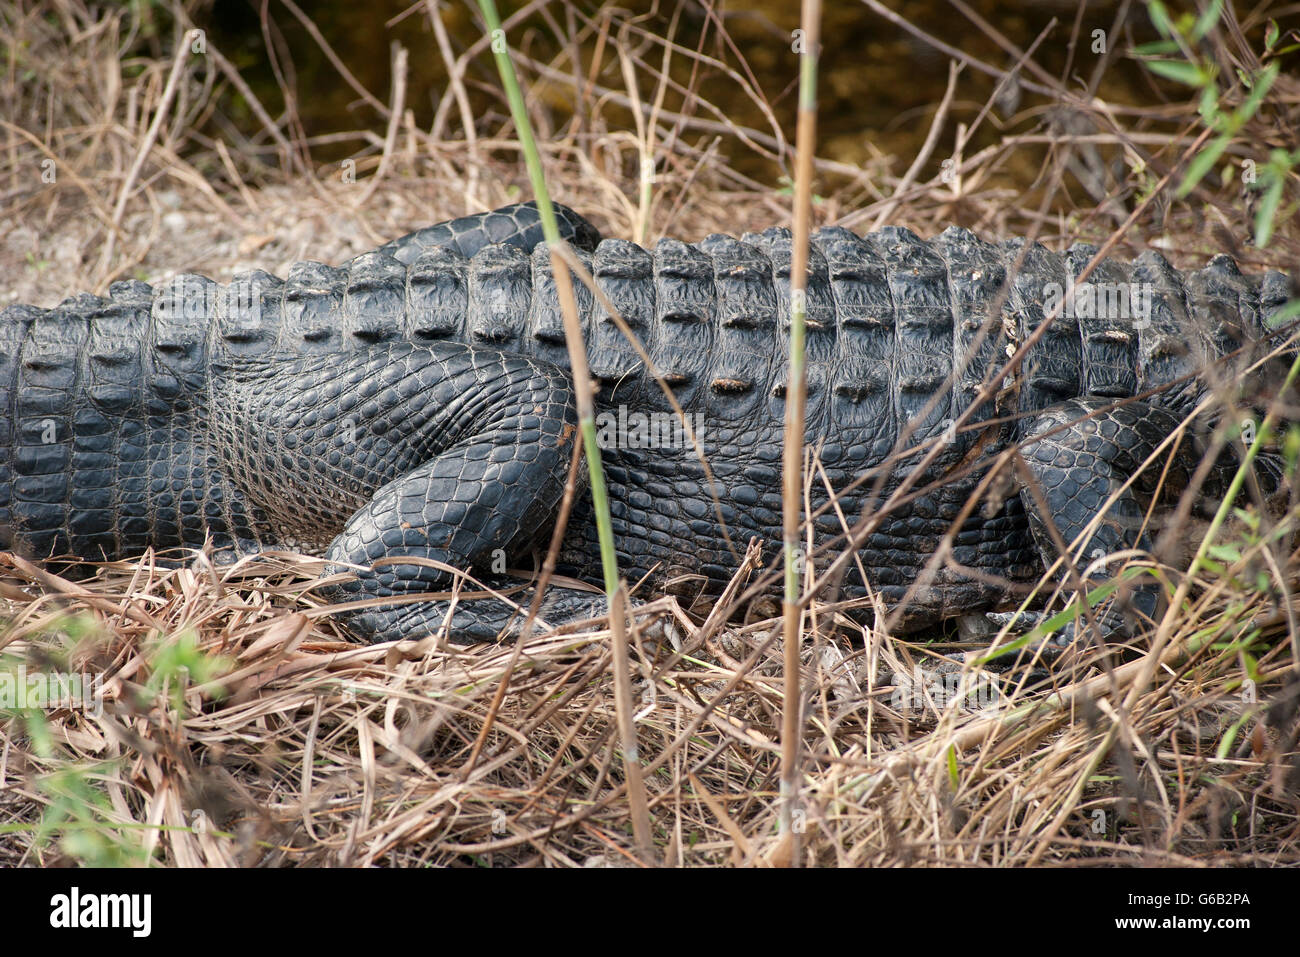 View of alligator's mid section - Stock Image